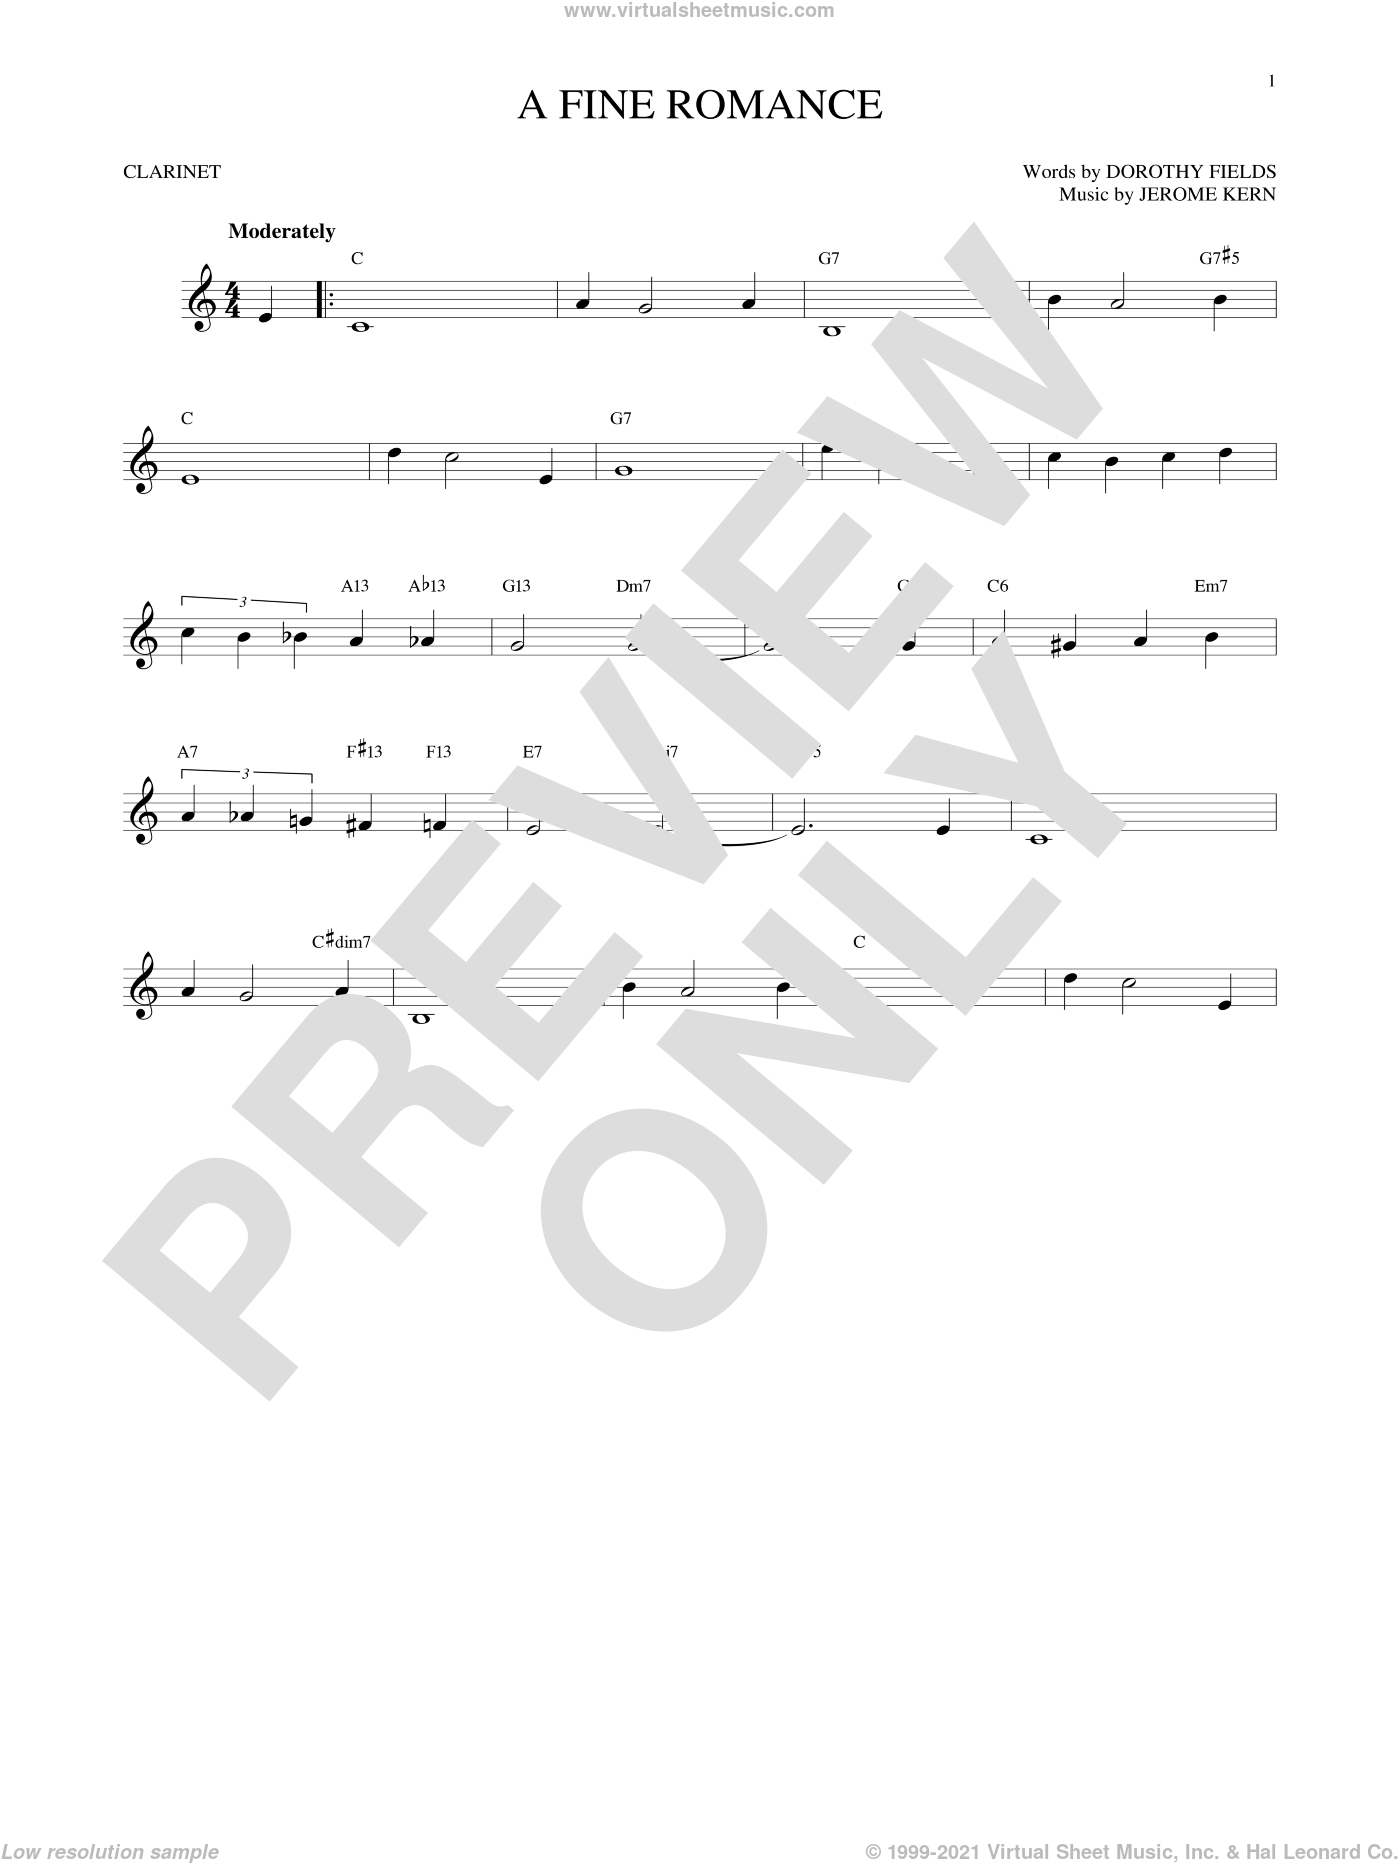 A Fine Romance sheet music for clarinet solo by Jerome Kern and Dorothy Fields, intermediate skill level